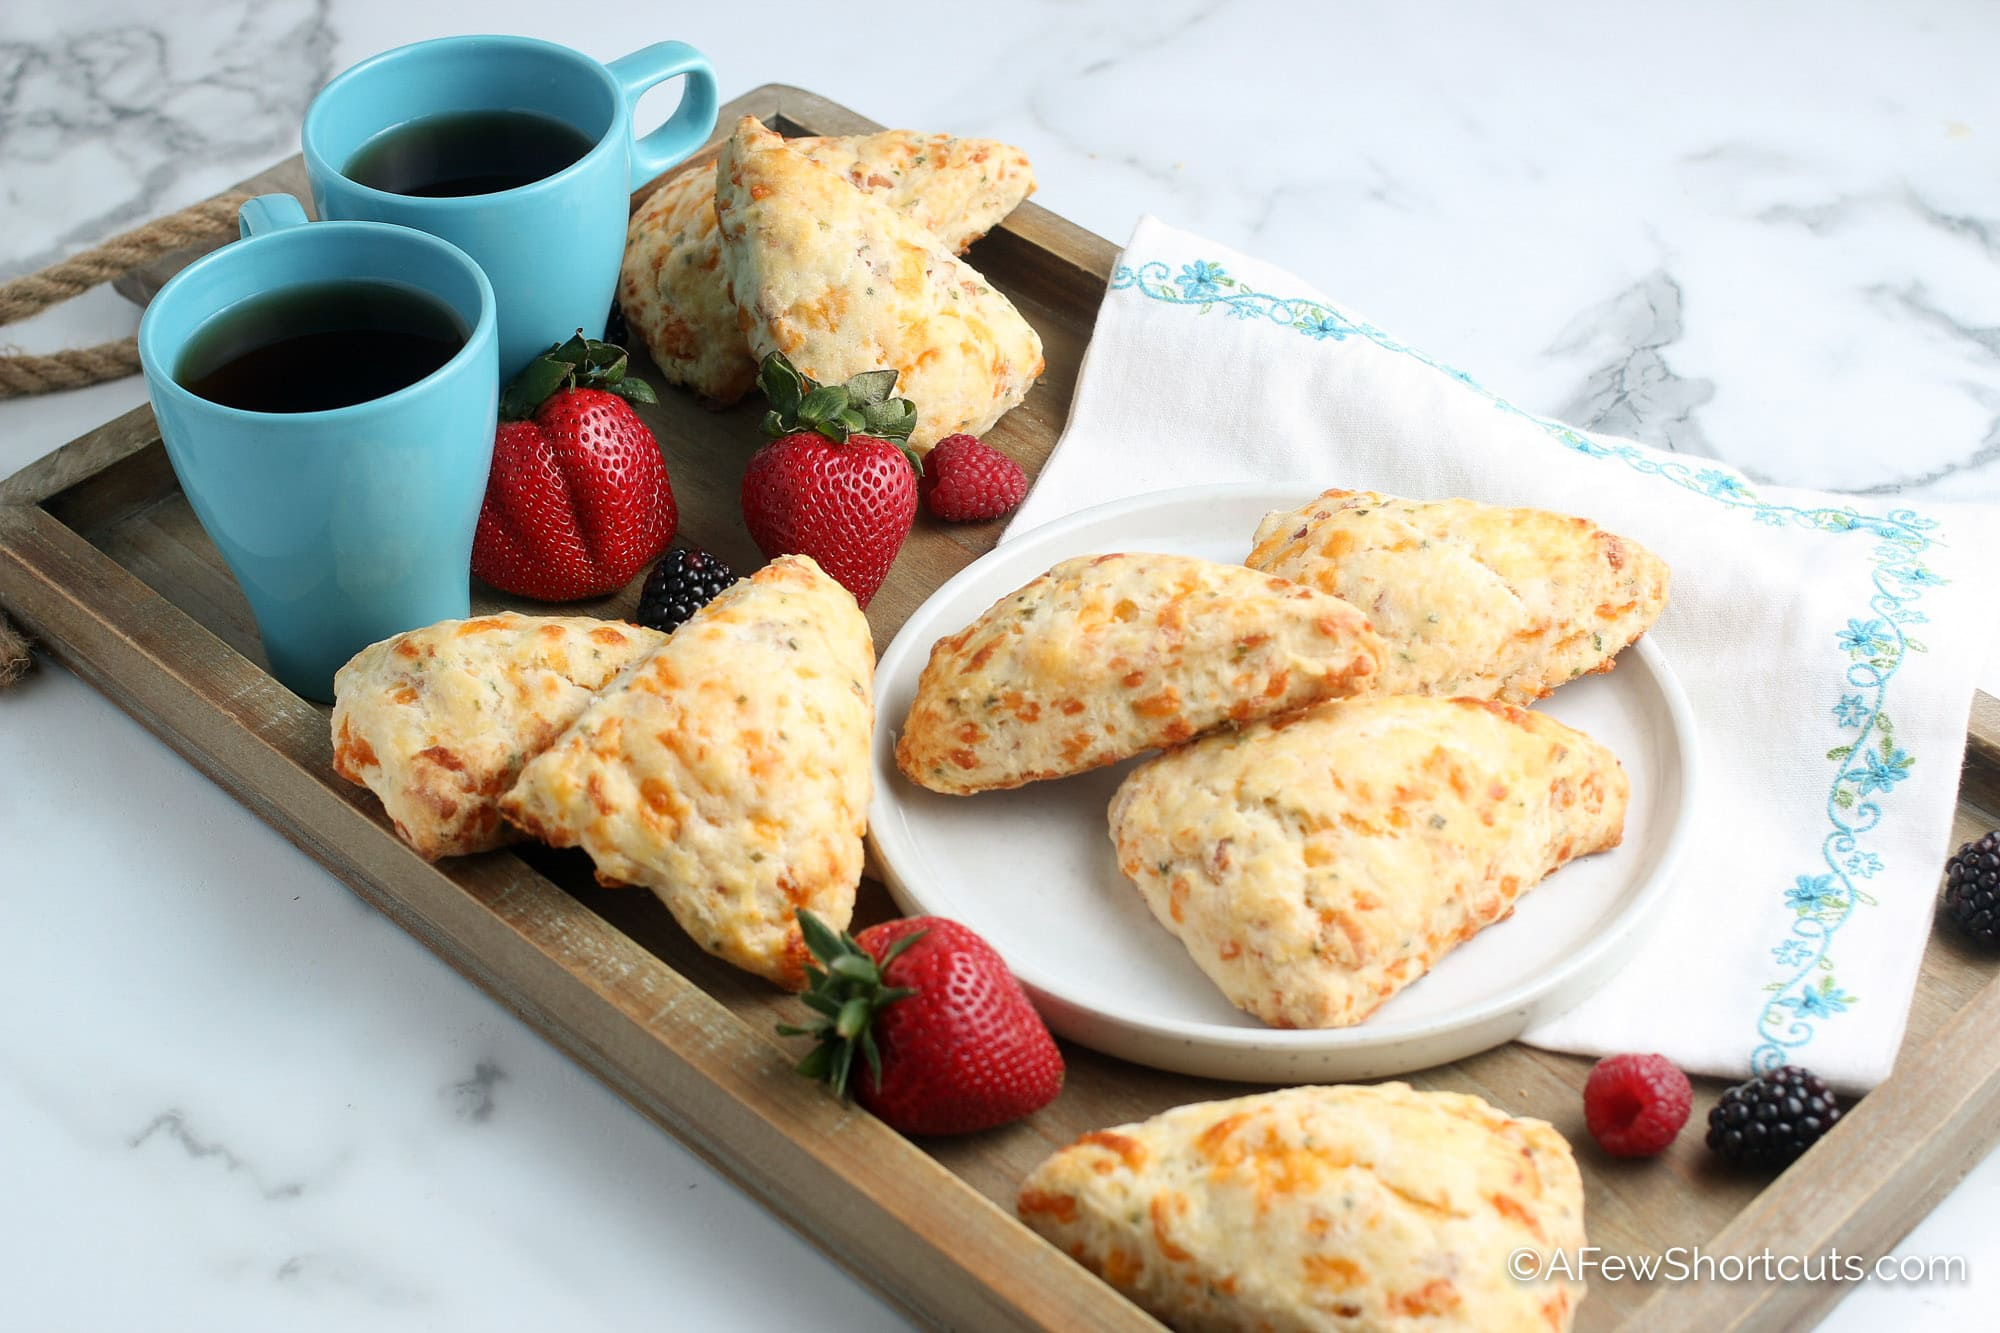 Bacon Cheddar Scones on tray with coffee and berries